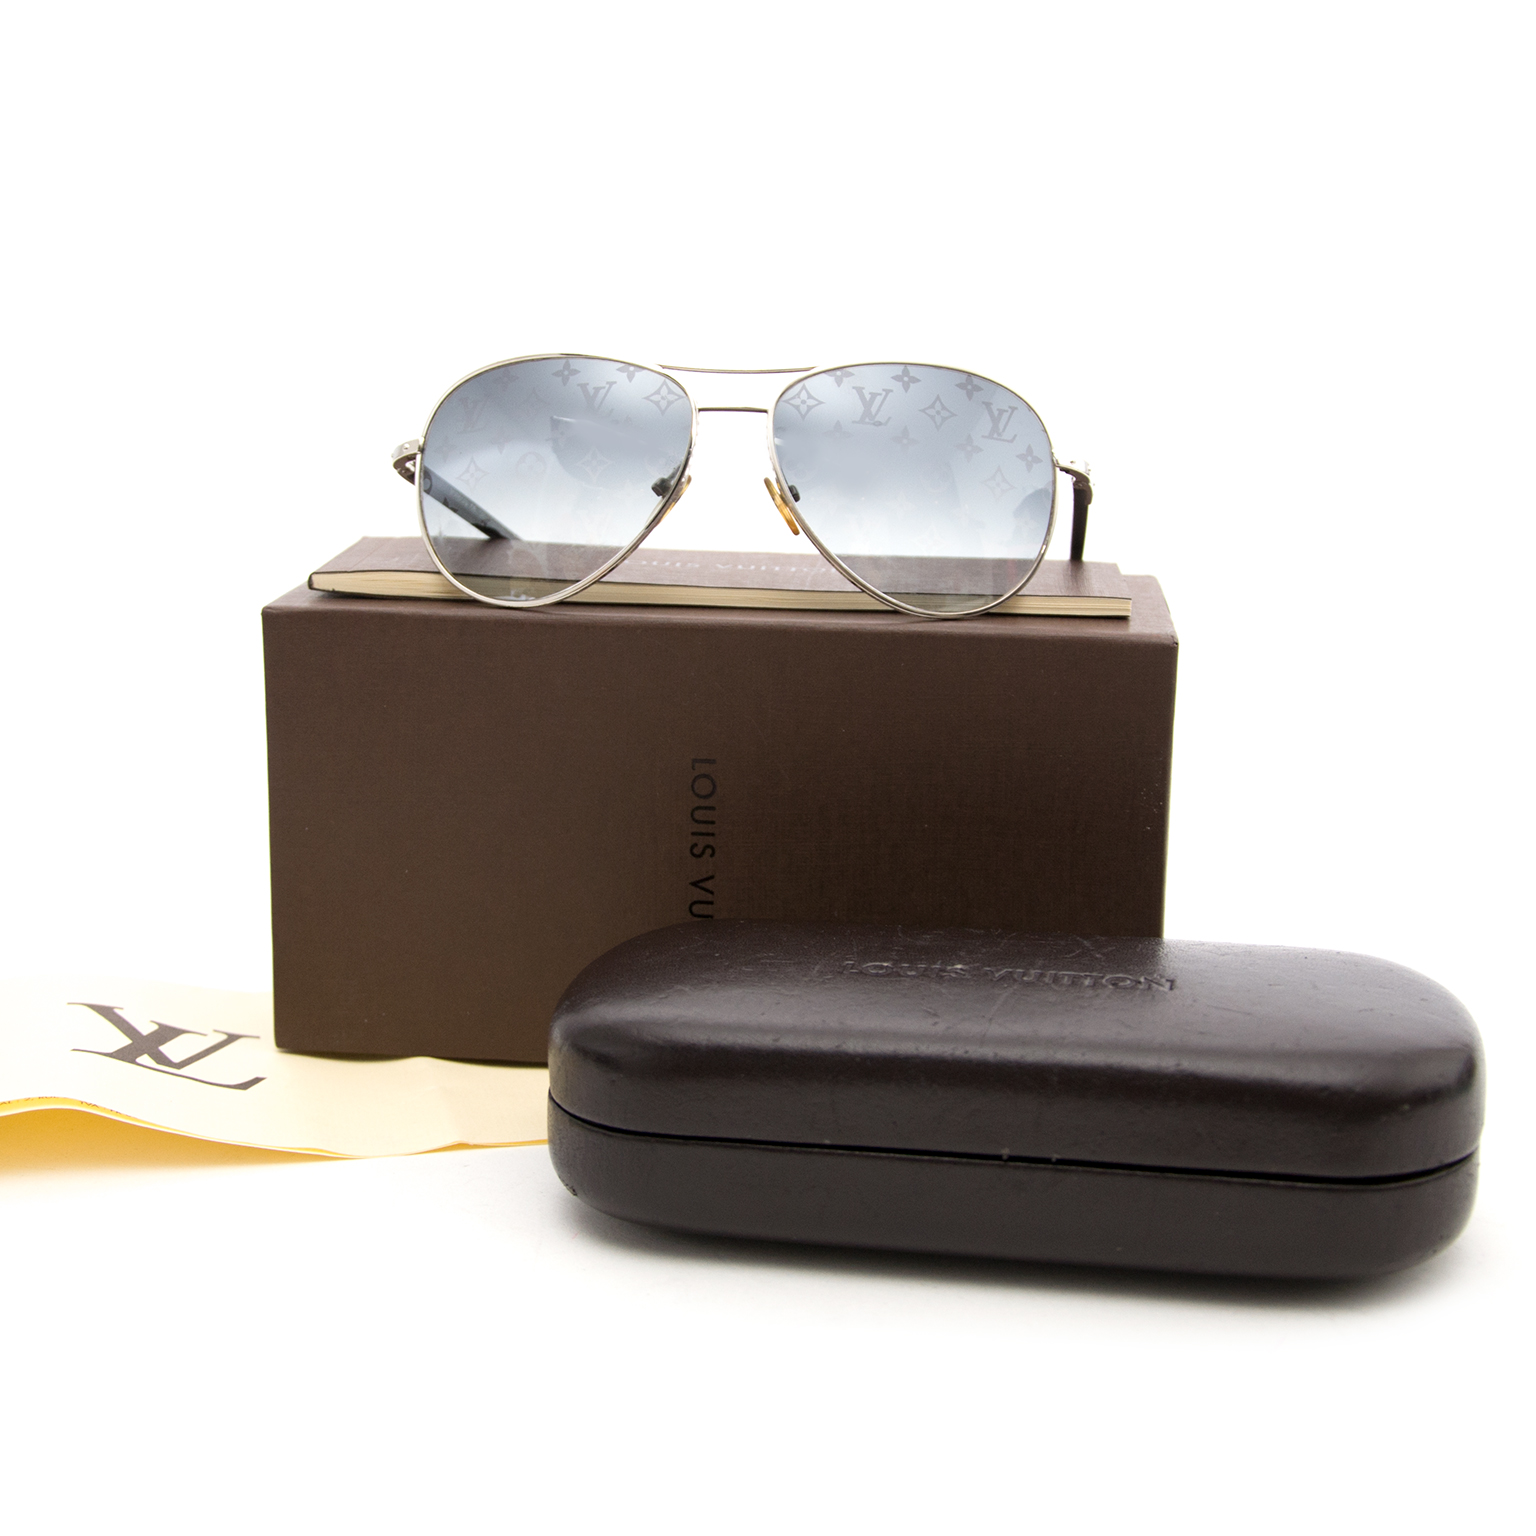 d218b445dd06 ... Buy an authentic secondhand Louis Vuitton Monogram Pilote Sunglasses at  the right price